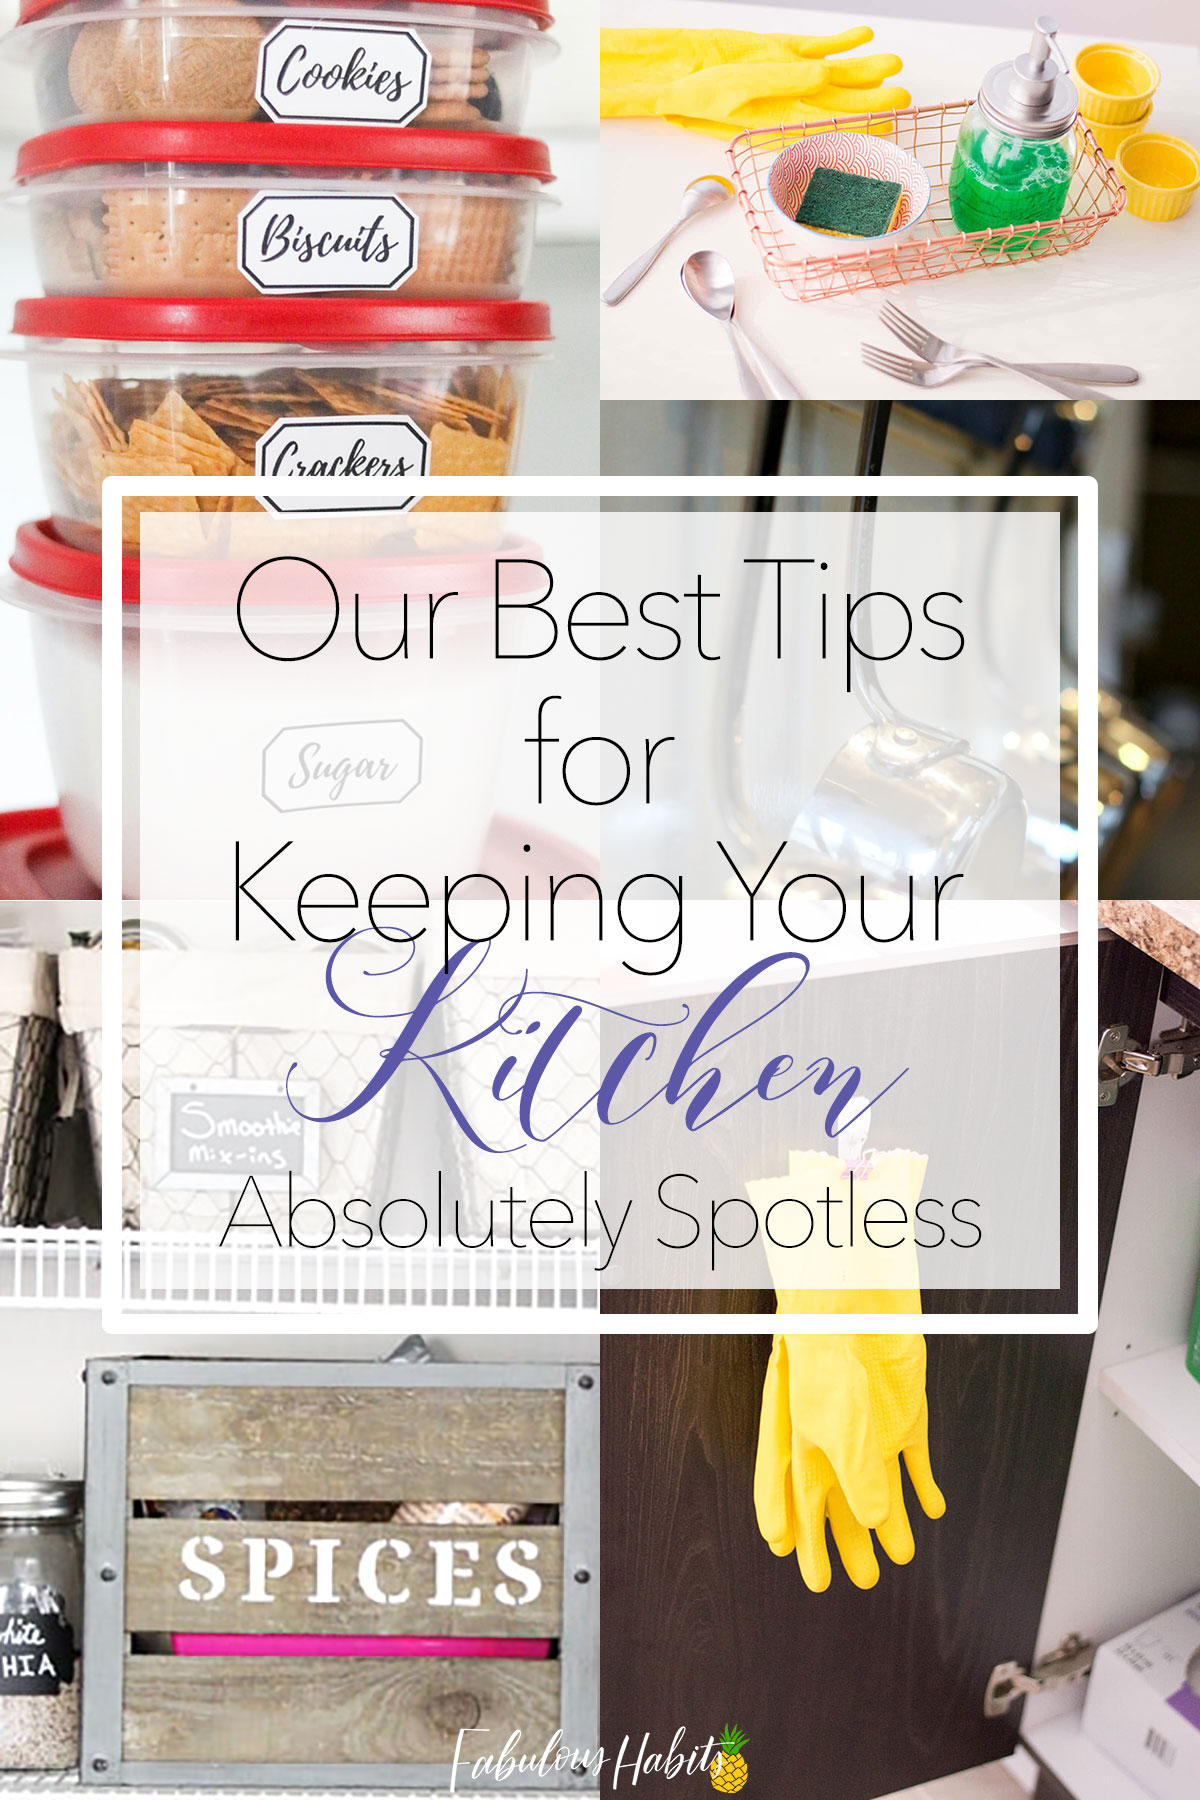 Our best tips for keeping your kitchen absolutely spotless! Here are our best kitchen organization tips. #kitchenorganization